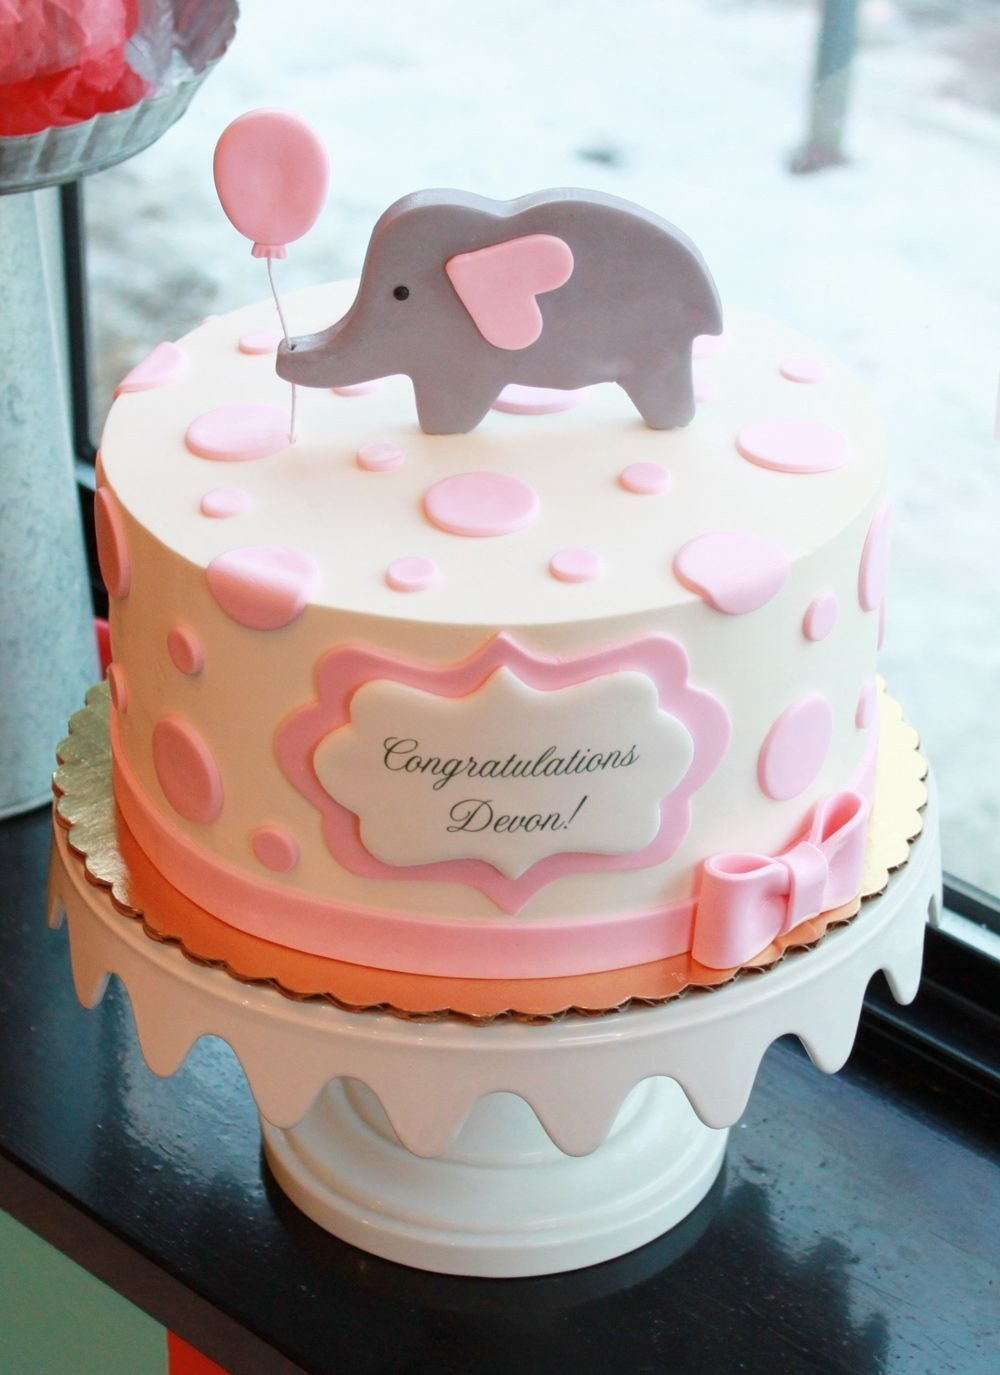 10 Stunning Baby Shower Cake Ideas For A Girl dotty elephant baby shower cake whipped bakeshop baby shower 2021